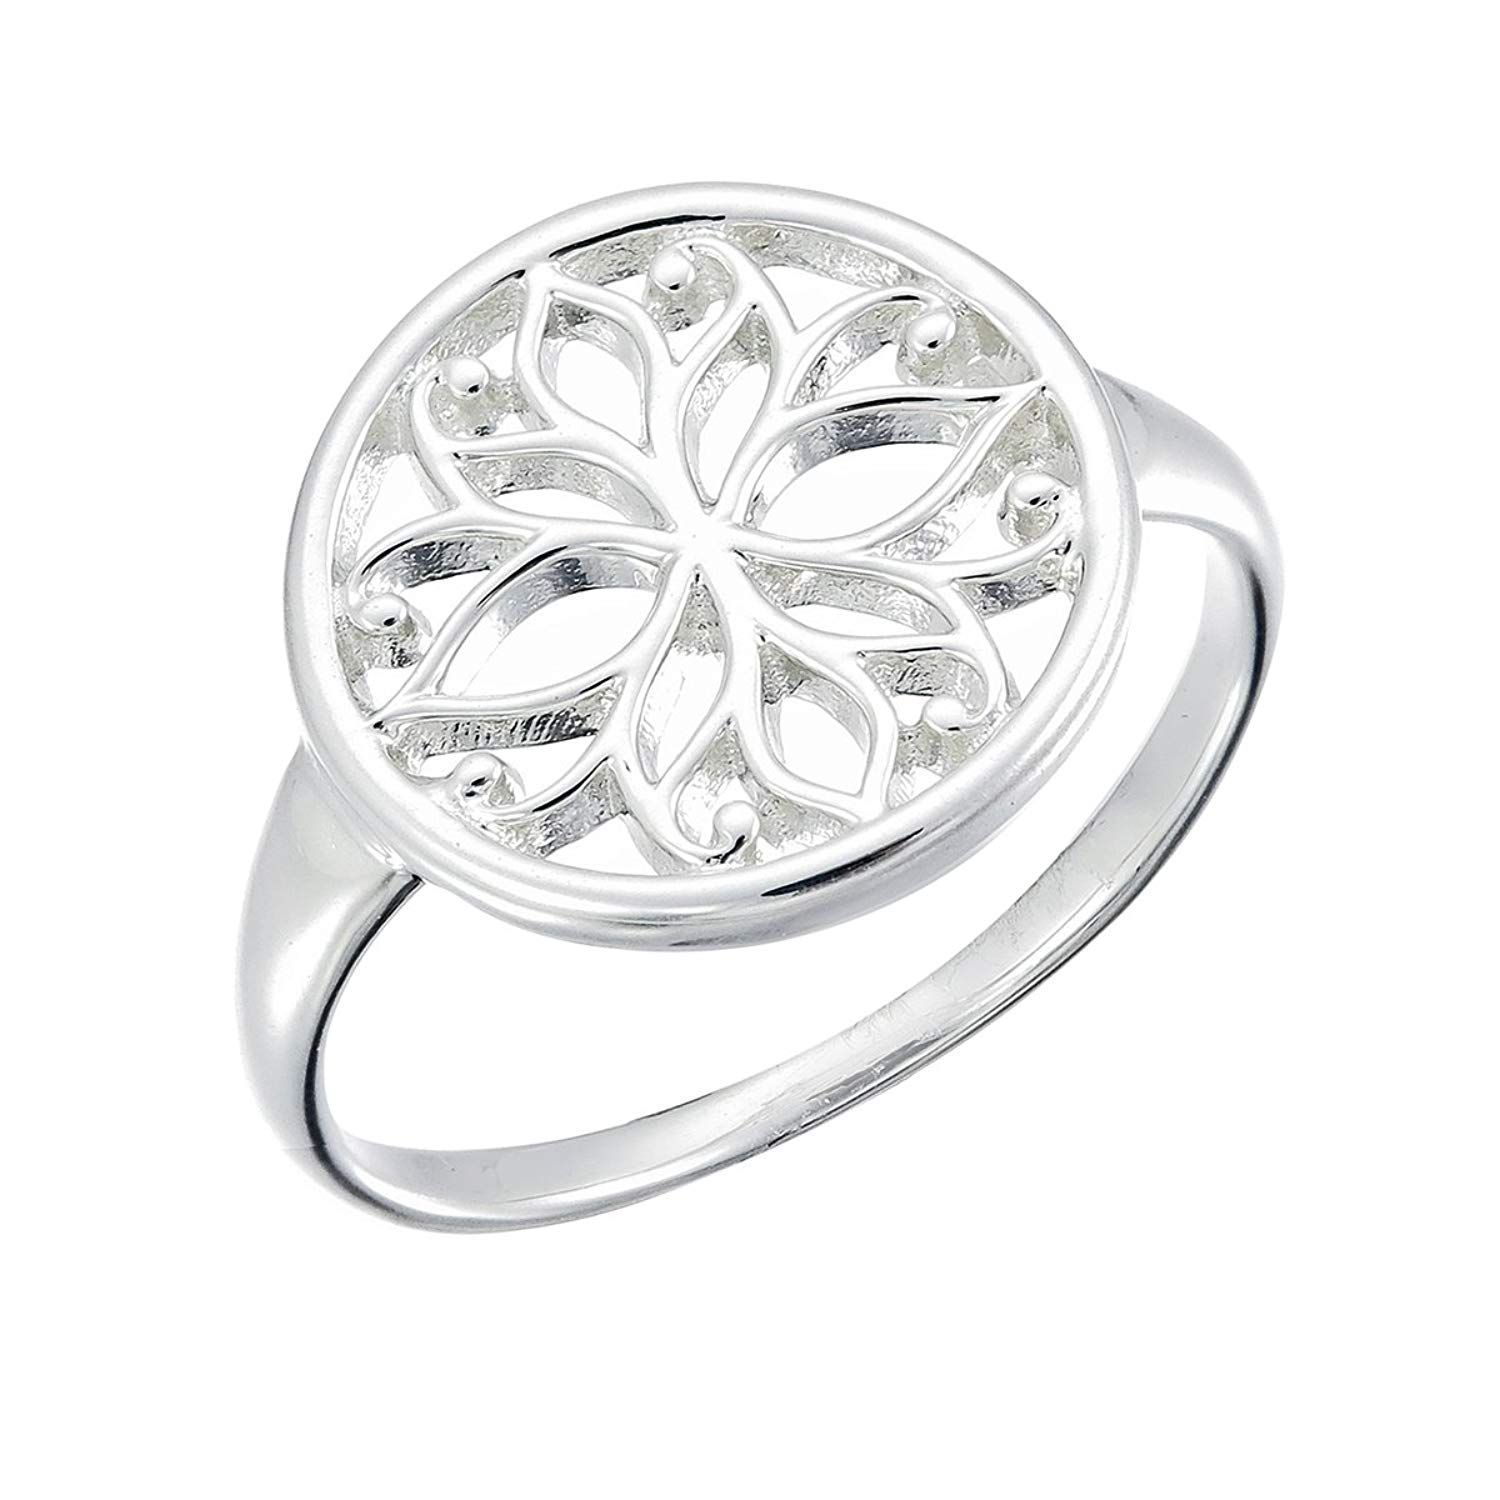 Boma jewelry sterling silver lotus flower circle ring